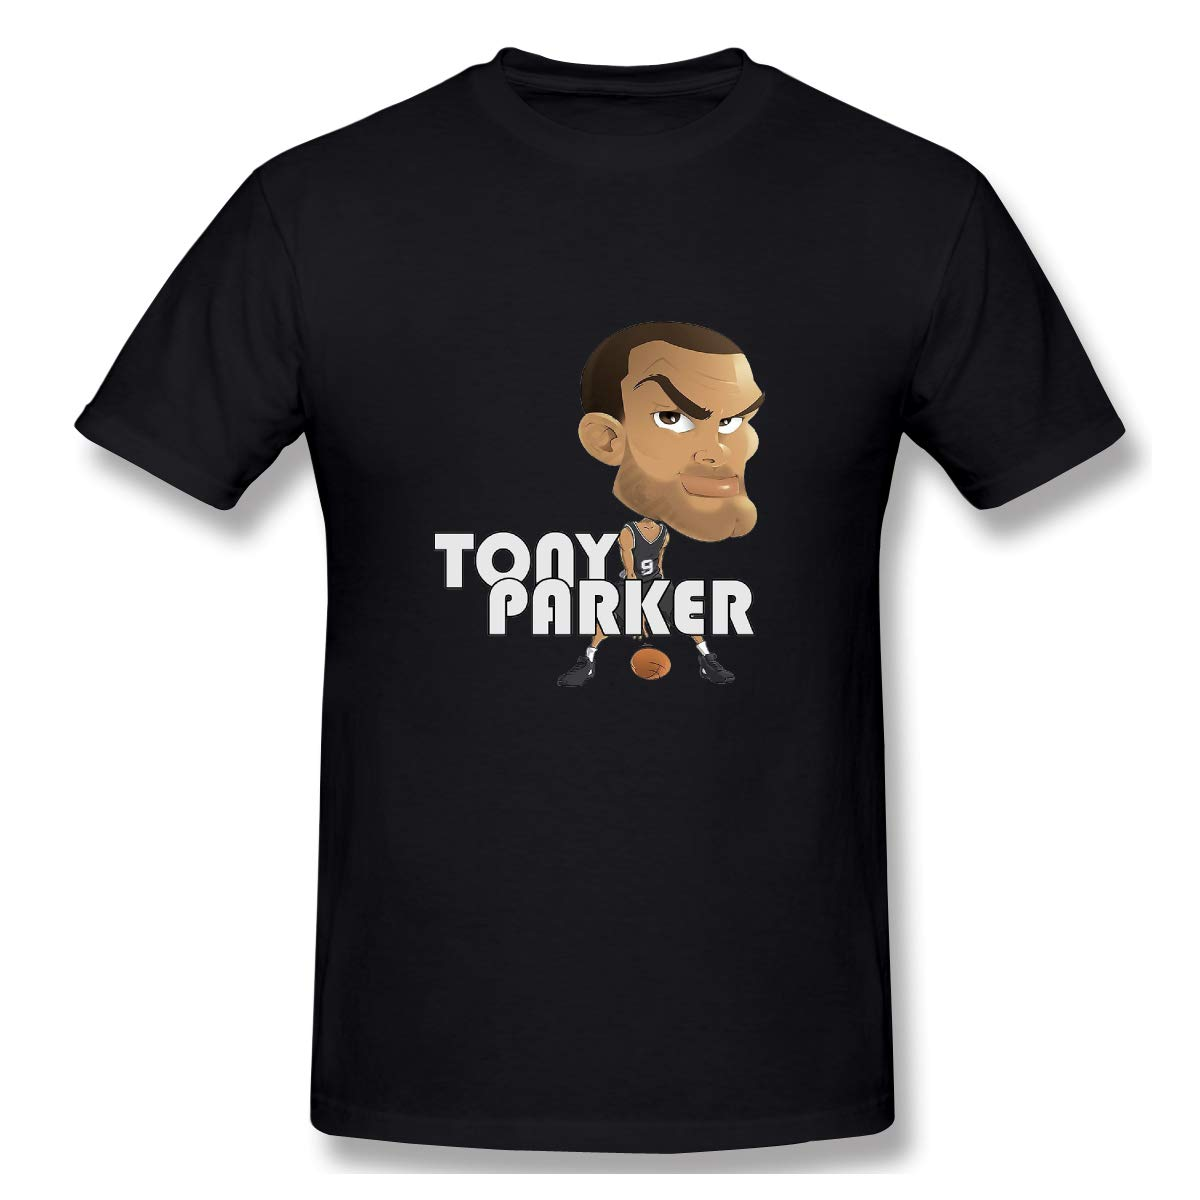 Tommying Sophy S Tony Parker Basketball Cartoon Muscle Tops Tee Short Shirts